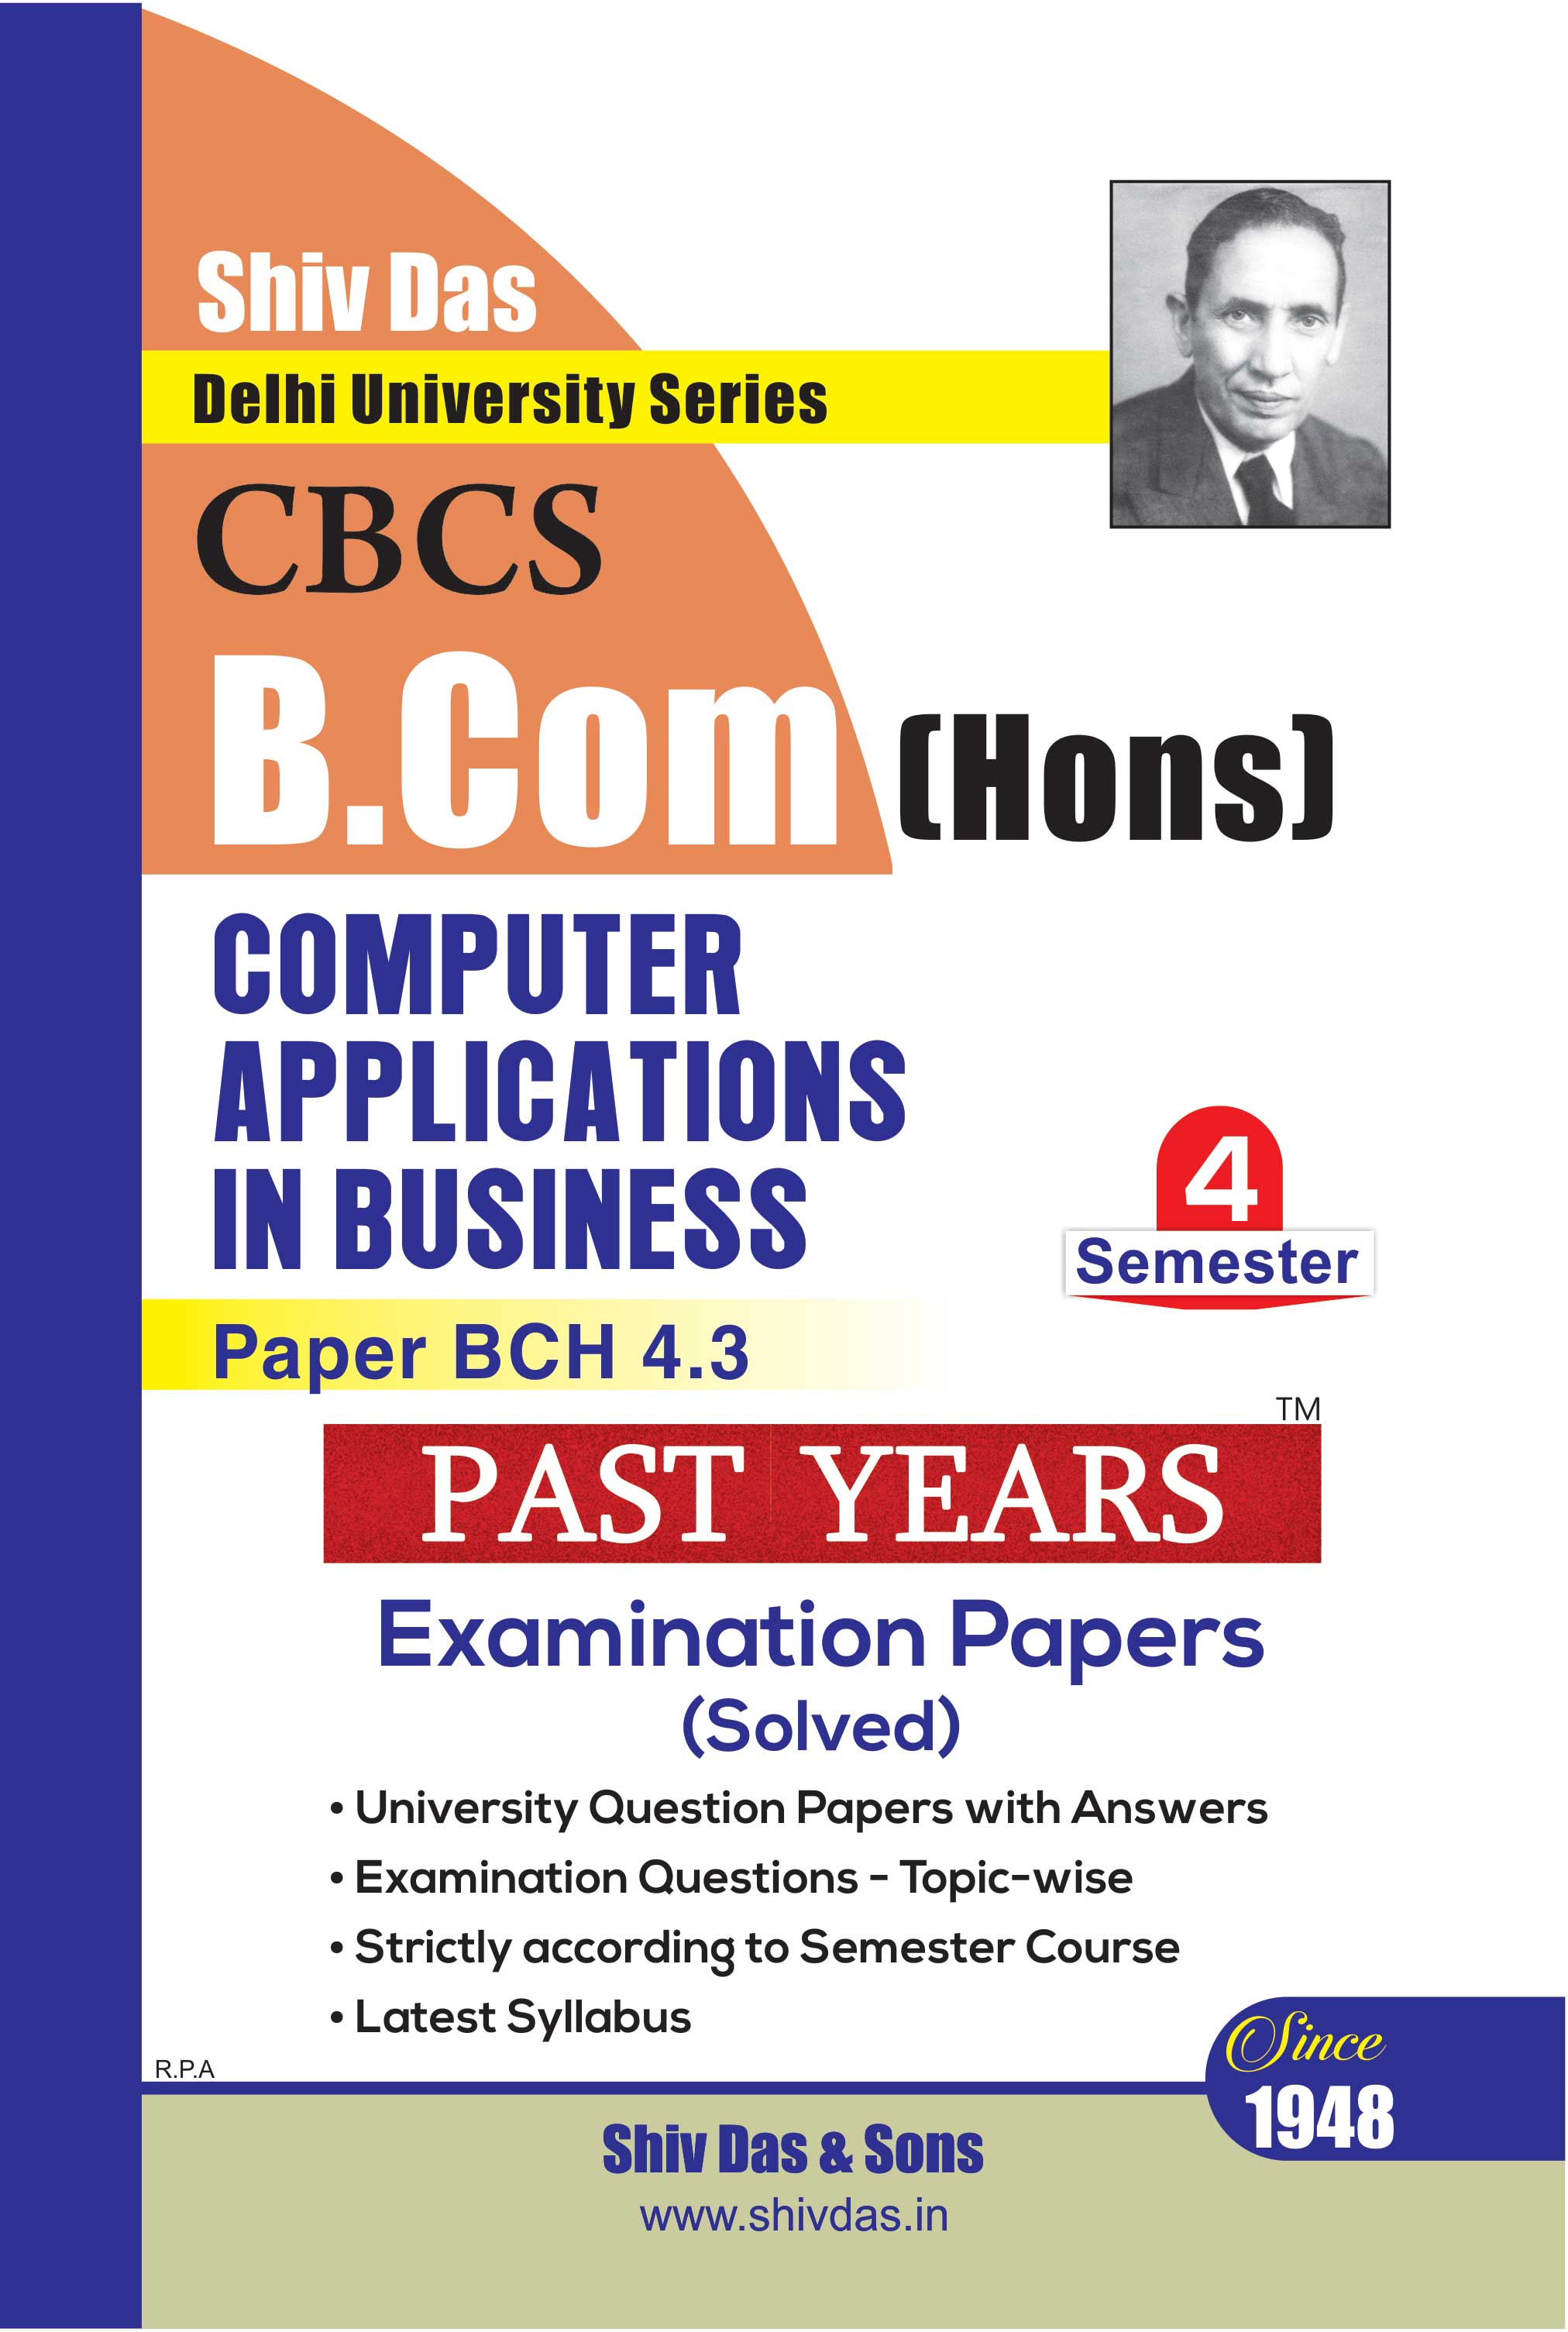 Computer Applications in Business for B.Com Hons Semester 4 for Delhi University by Shiv Das